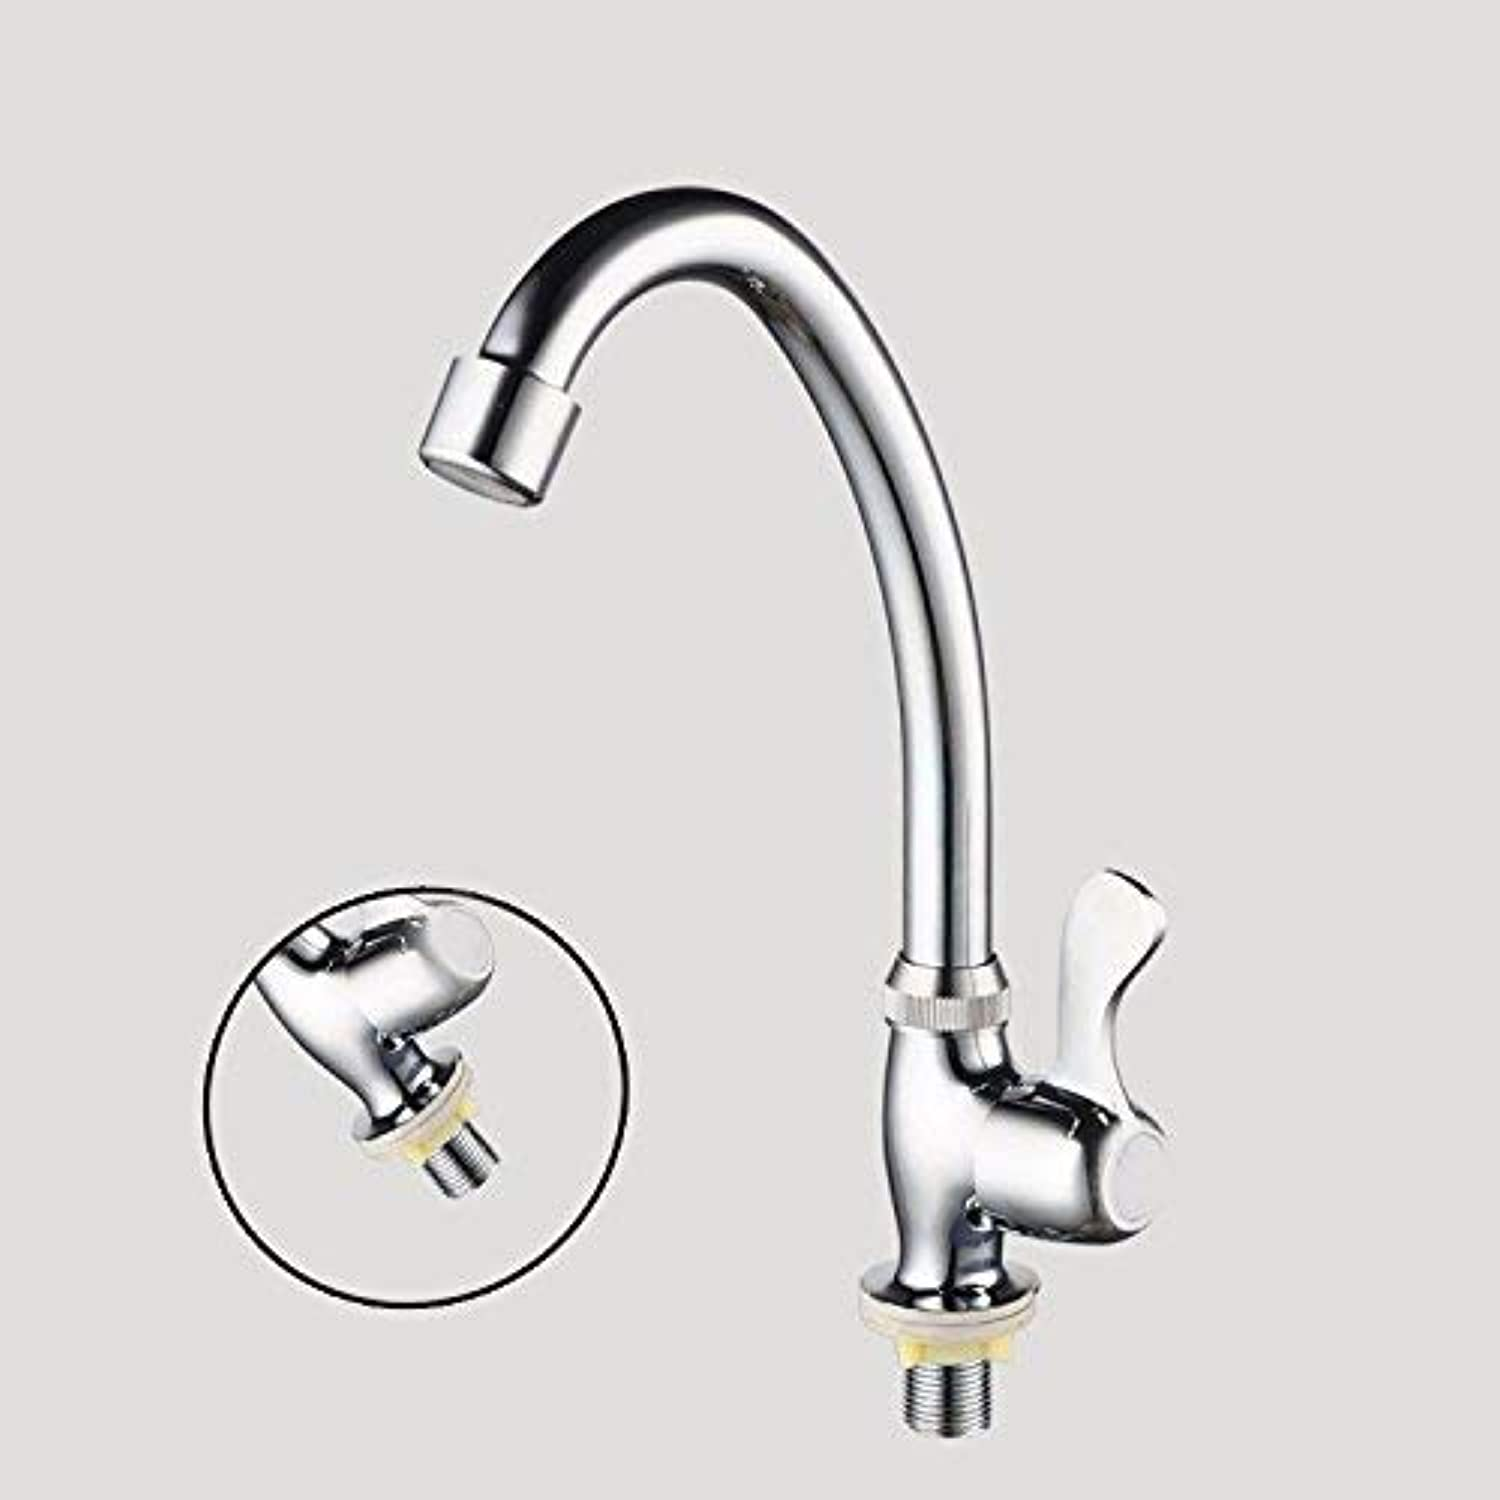 Ywqwdae Kitchen Bathroom Can Be redated Wash Basin Single Cold Single Handle Single Hole Stainless Steel Sink Faucet